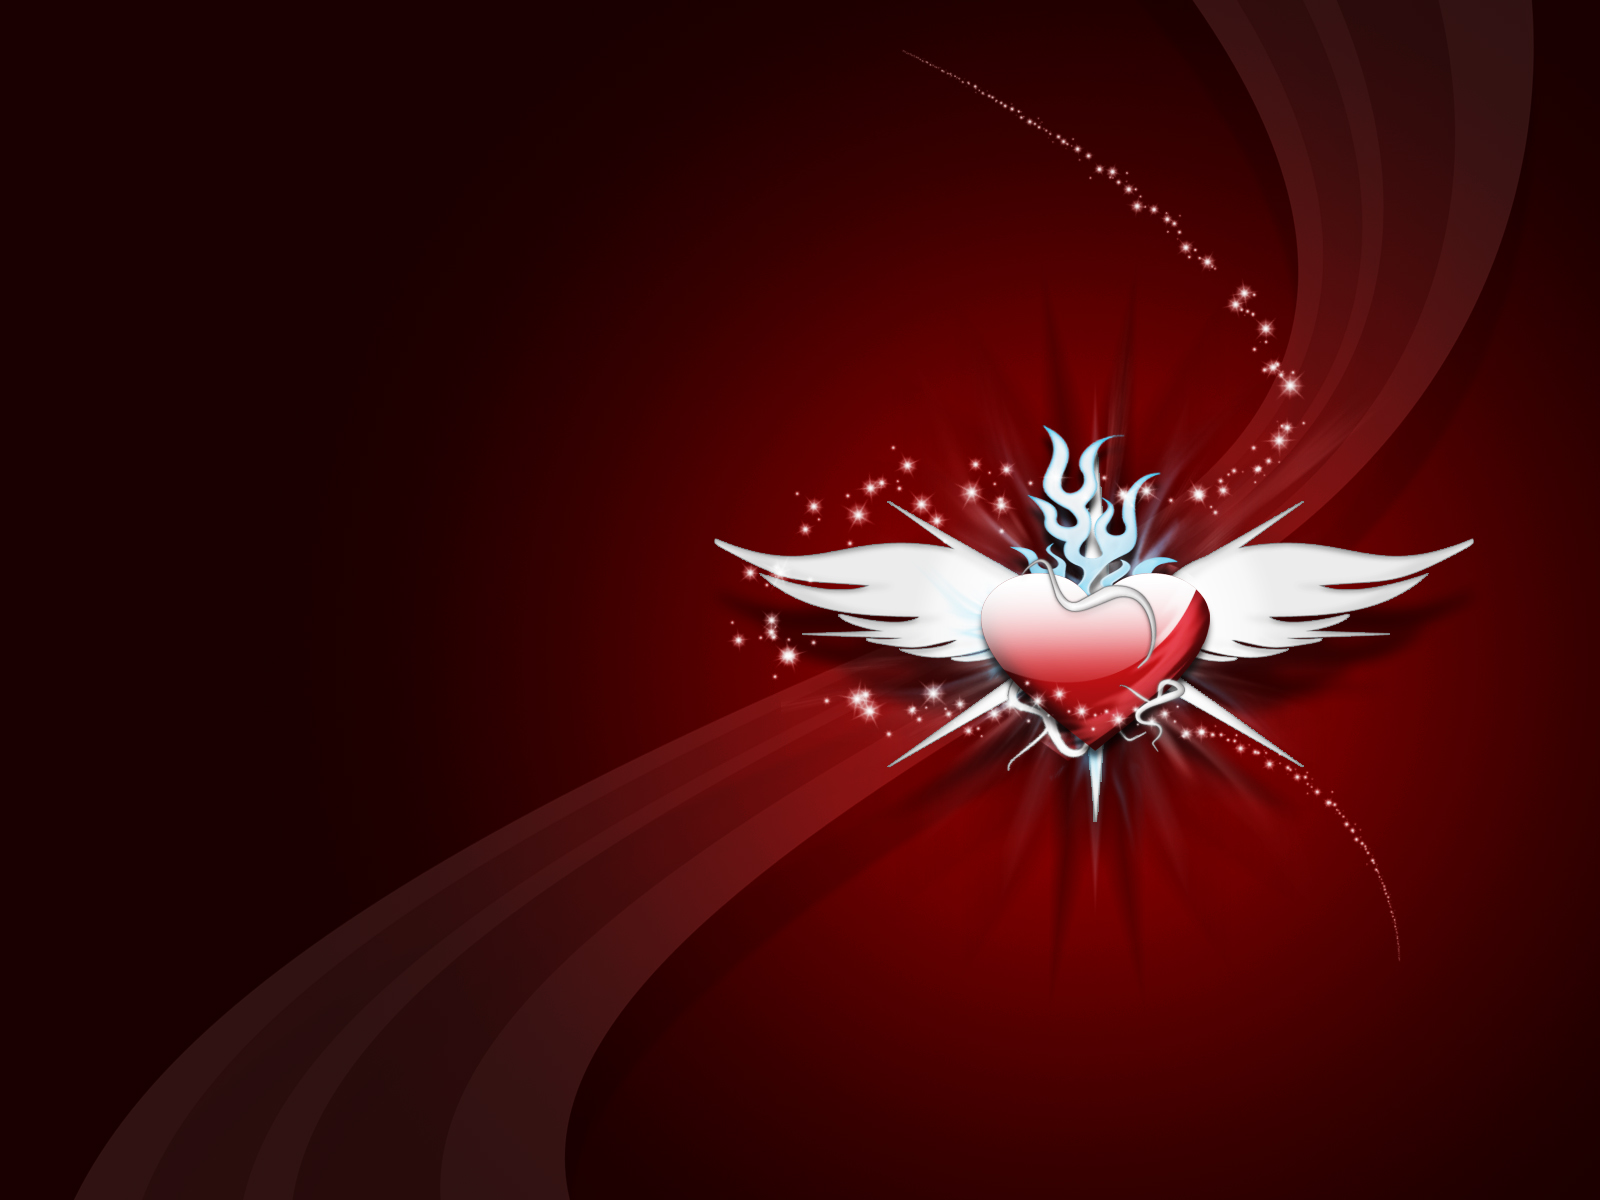 1600x1200 heart with wings desktop pc and mac wallpaper for Wallpaper home is where the heart is